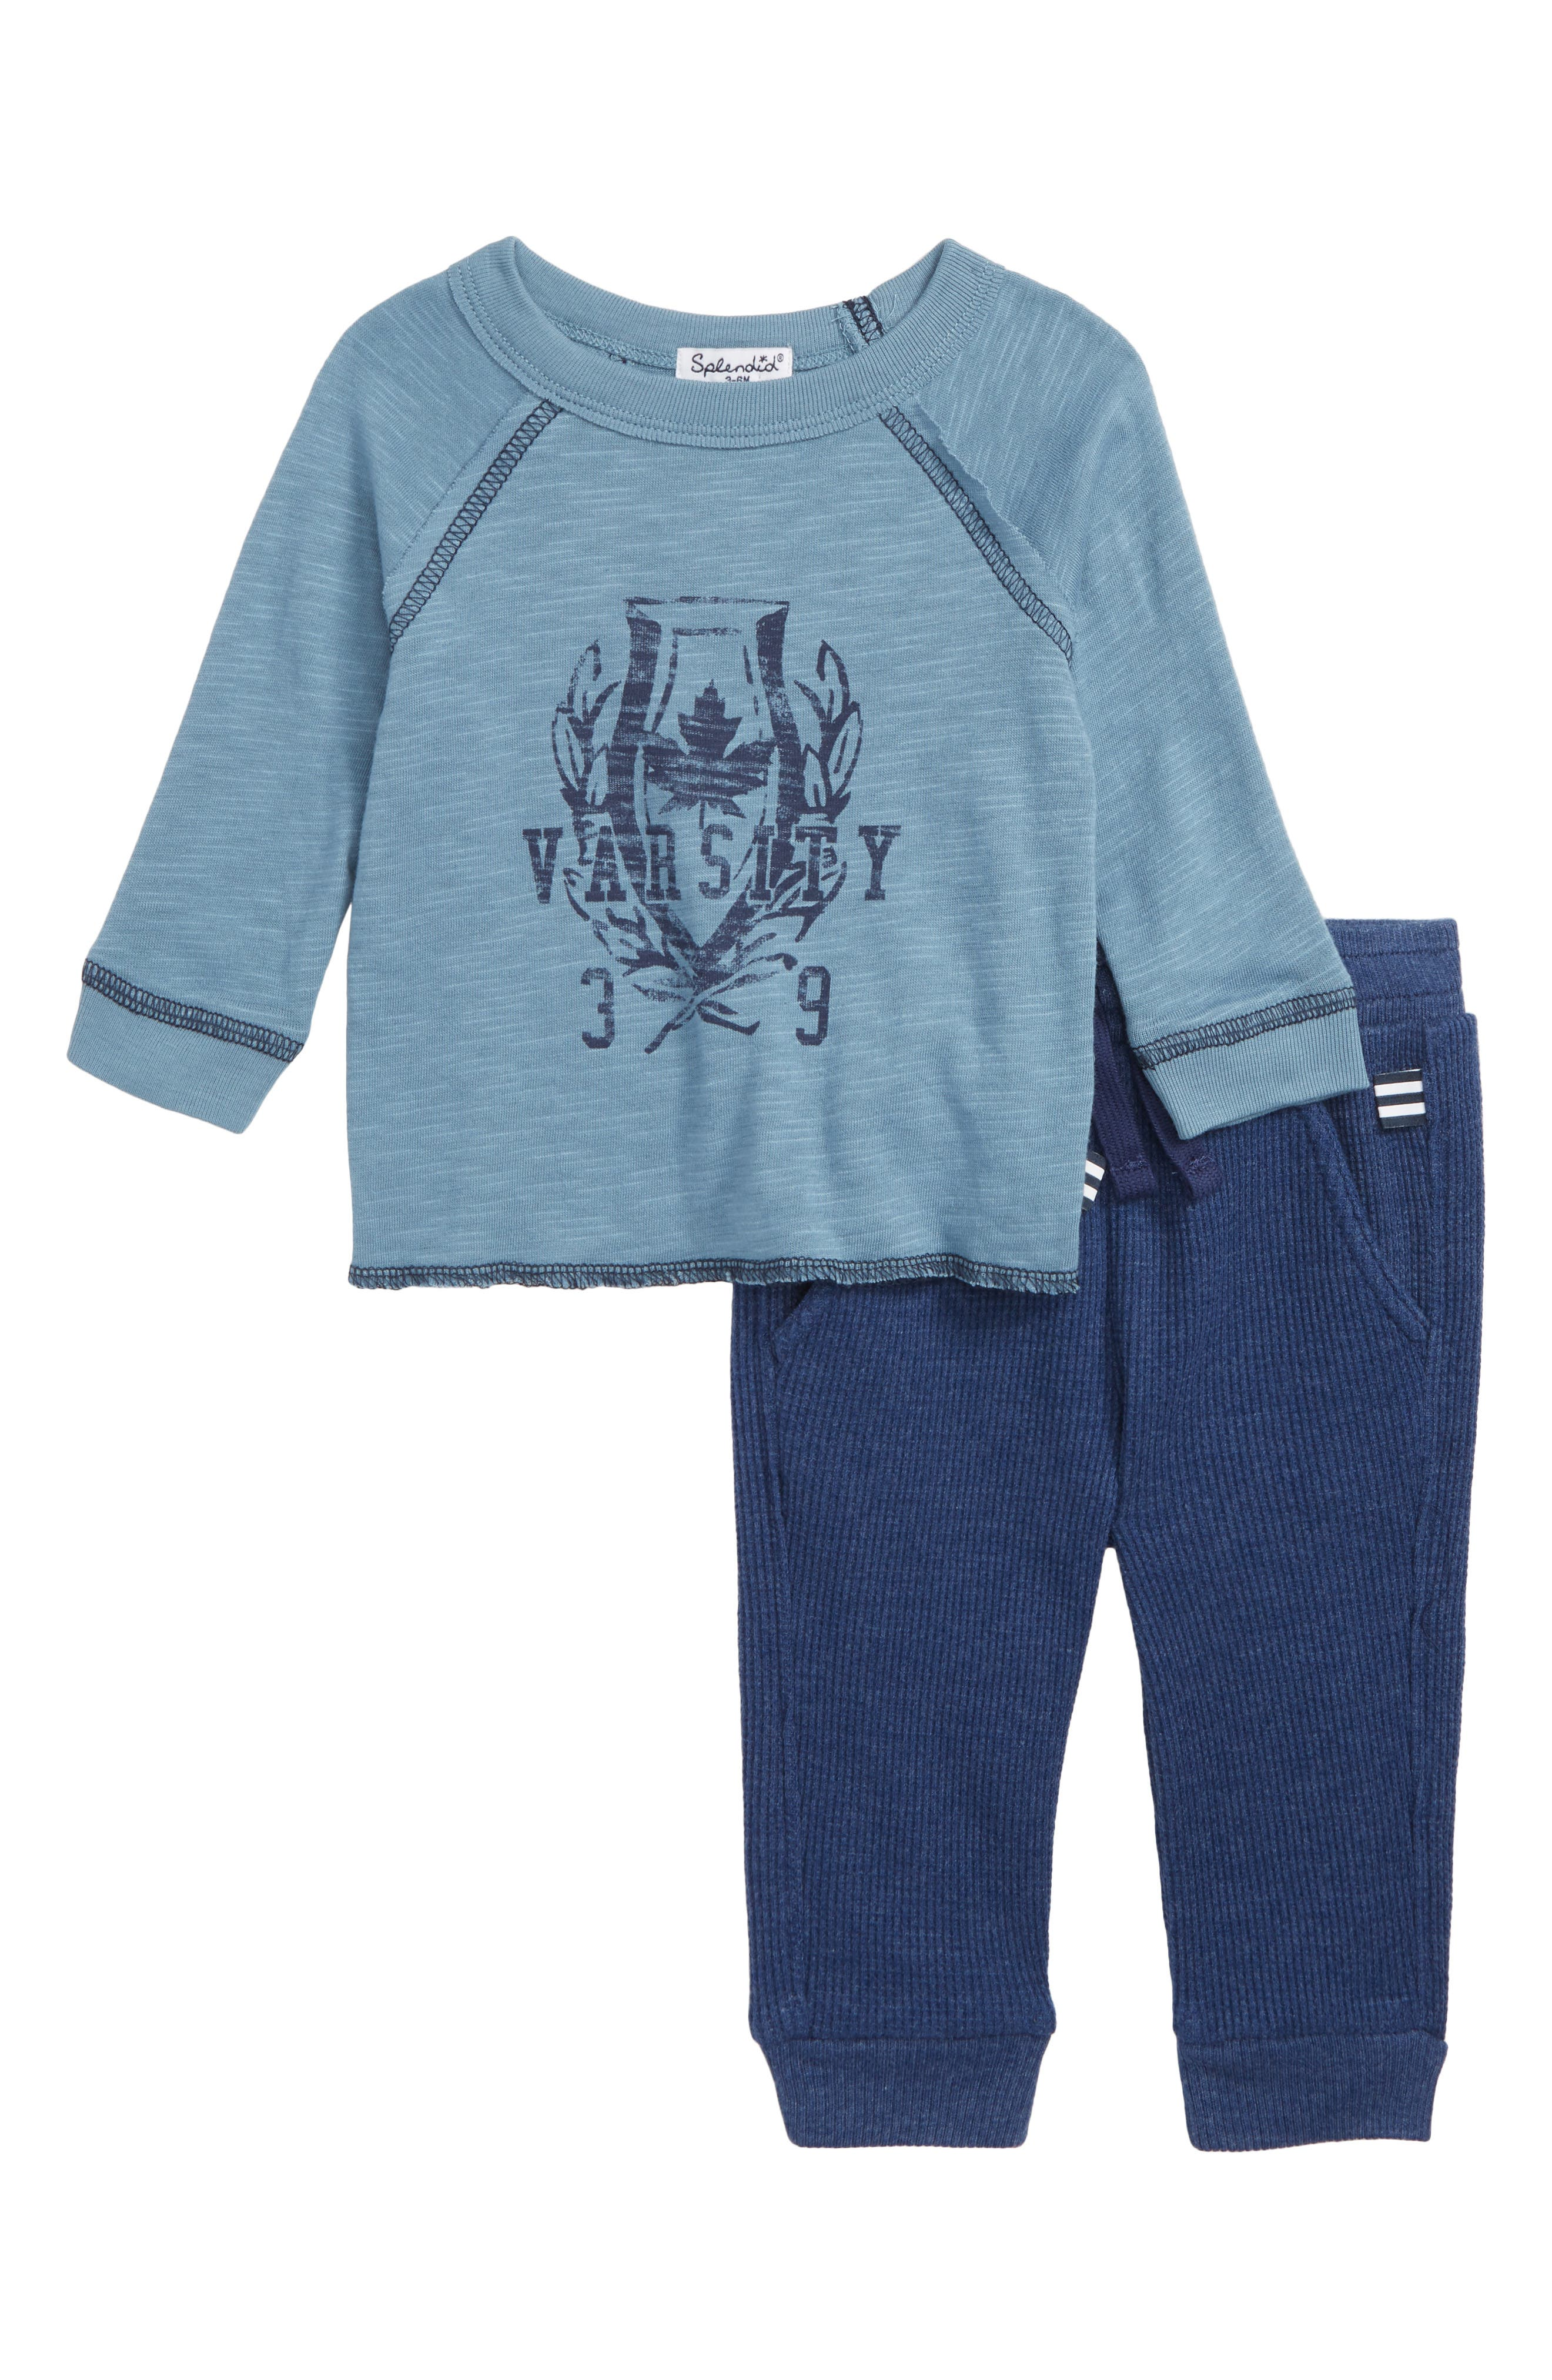 Raglan T-Shirt & Thermal Pants Set,                             Main thumbnail 1, color,                             PROVENCE BLUE